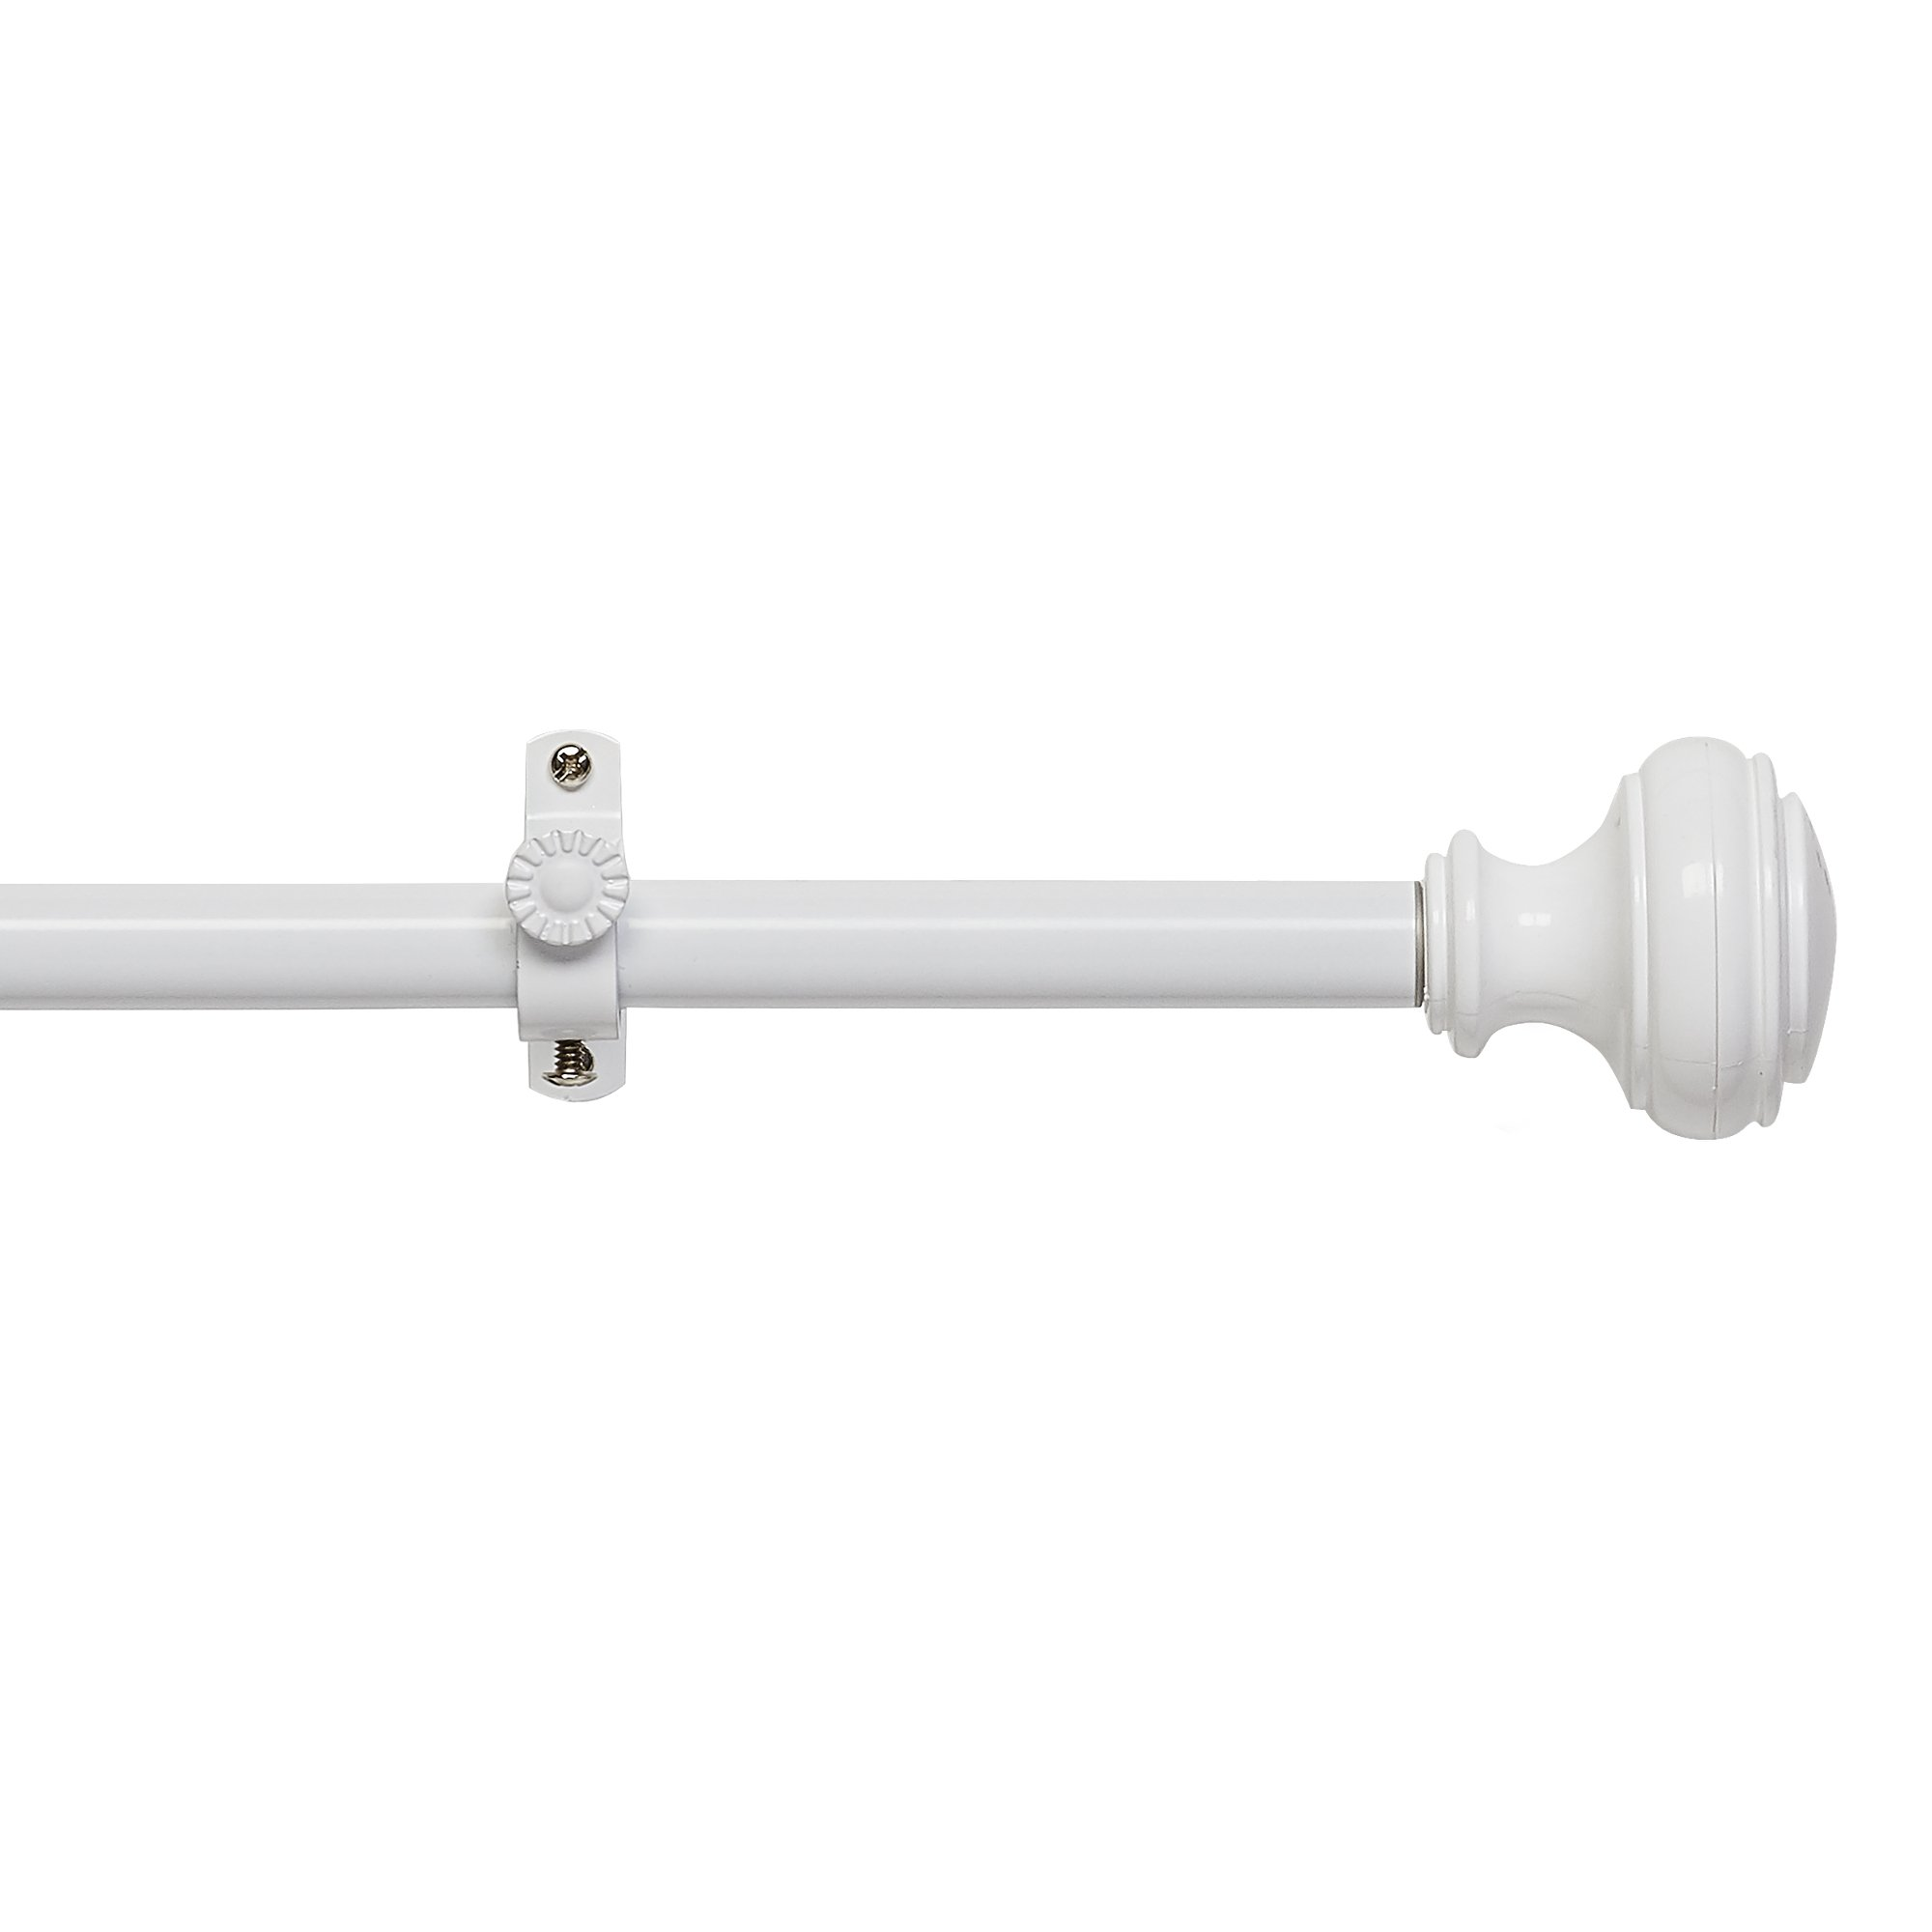 Achim Home Furnishings Buono II Decorative Rod and Finial Bradford, 66'' up to 120'', White